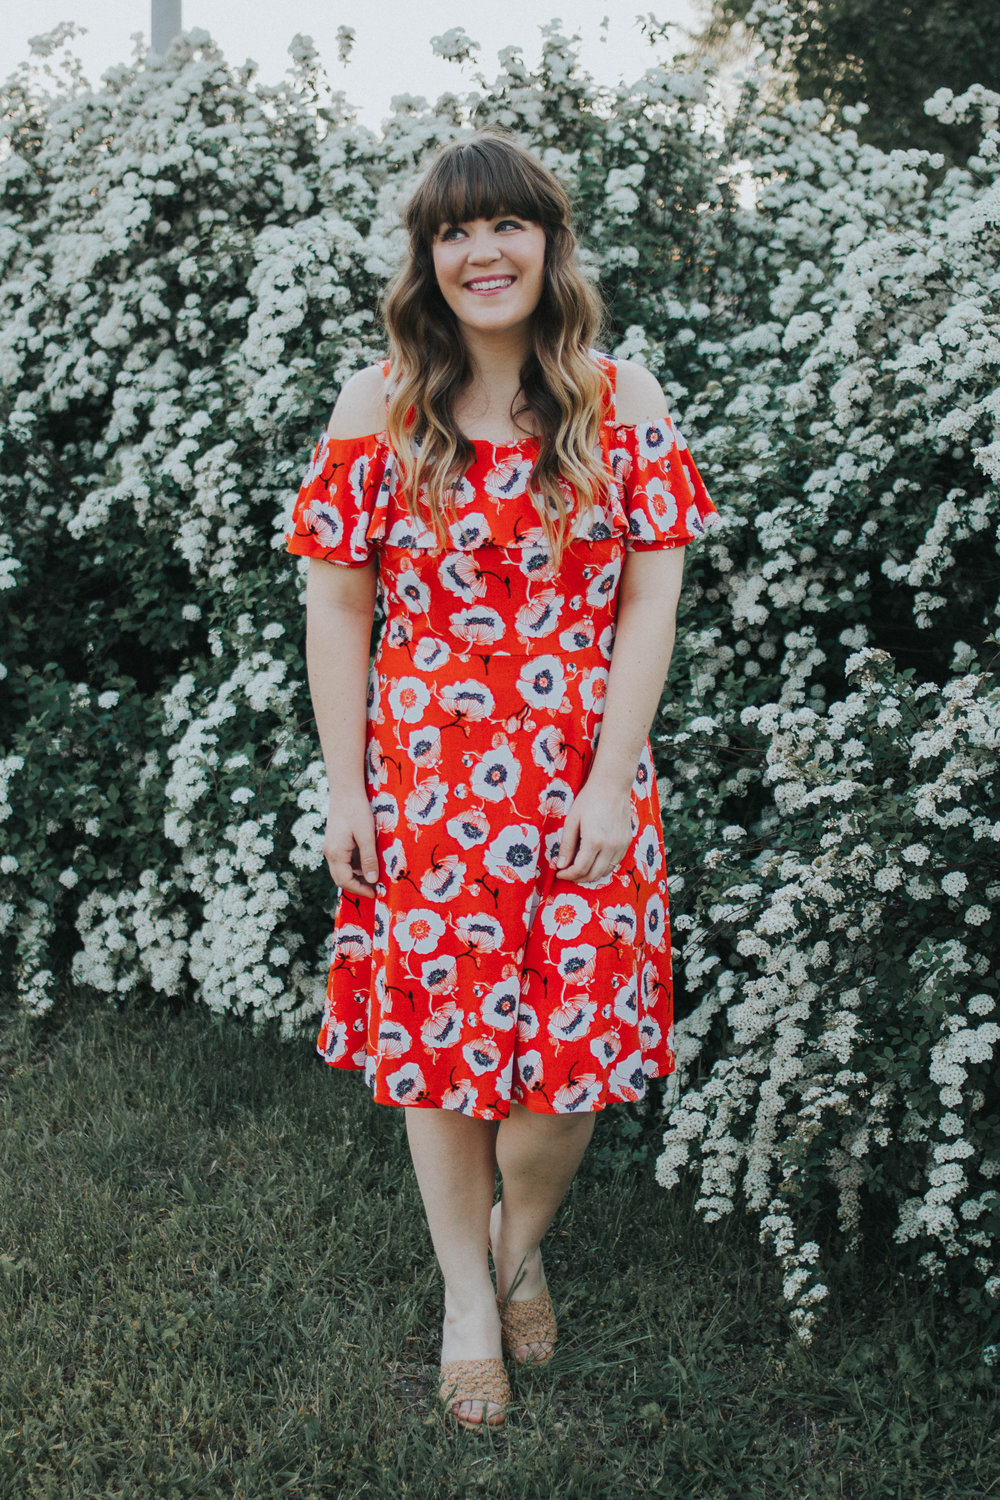 bbeb34f997a4 I decided to go with this Adrianna Papell Off Shoulder Short Sleeve Fit and  Flare Printed Dress and Adrianna Papell Talulah! Since they are both summer  ...